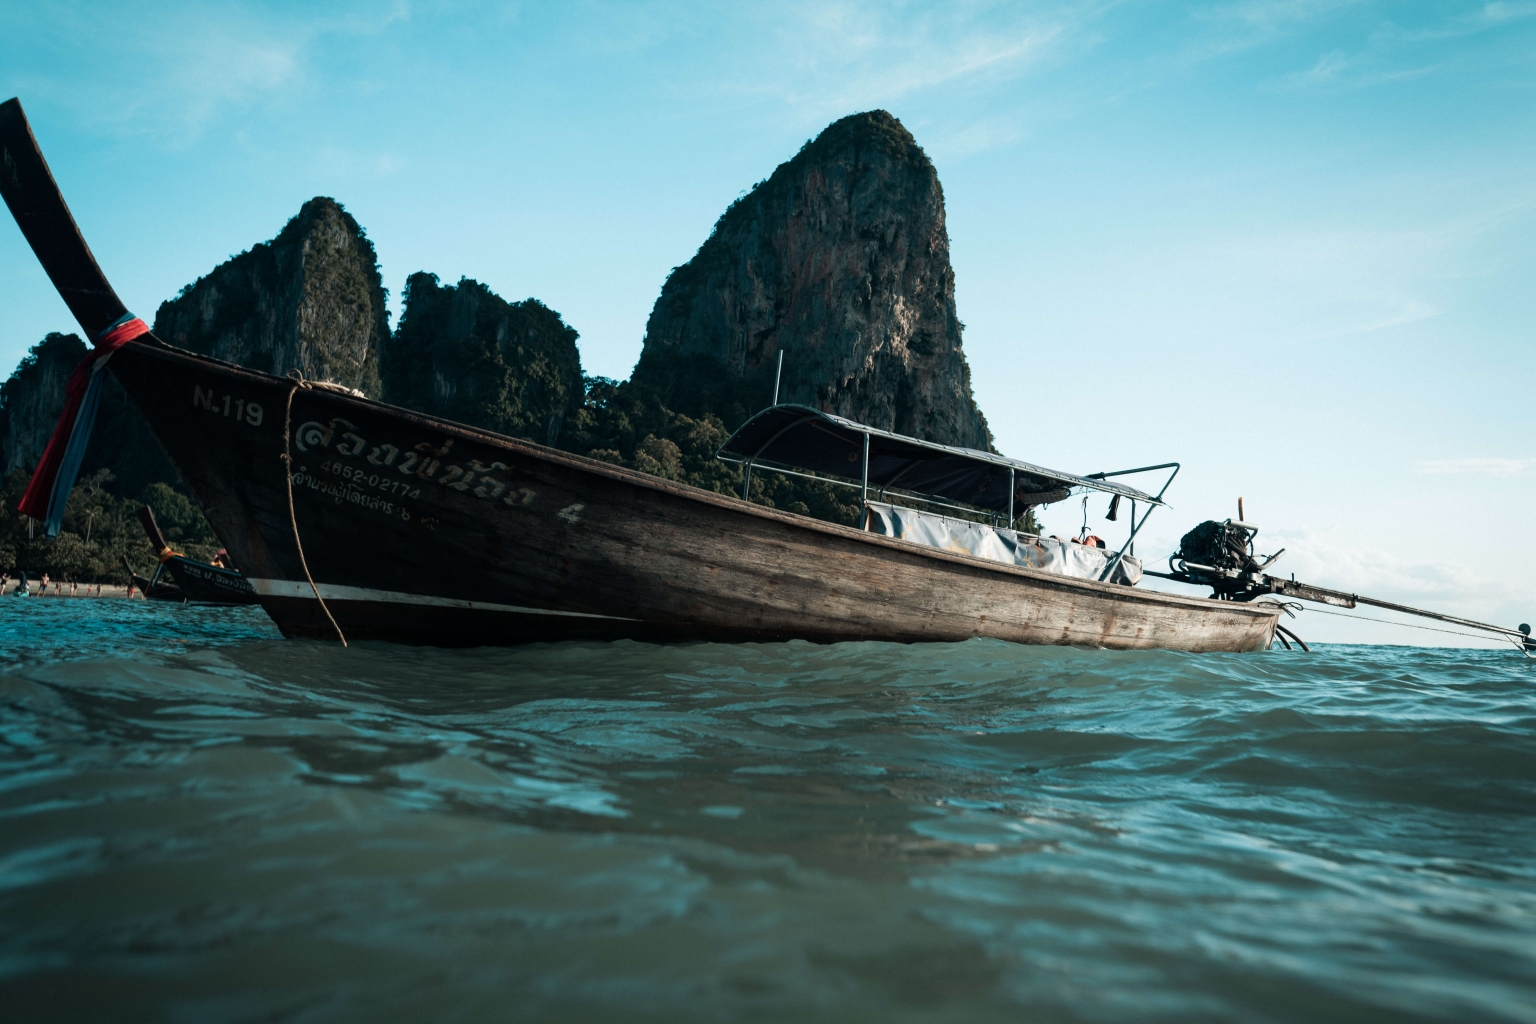 Renting a Long Tail boat at Railay Beach